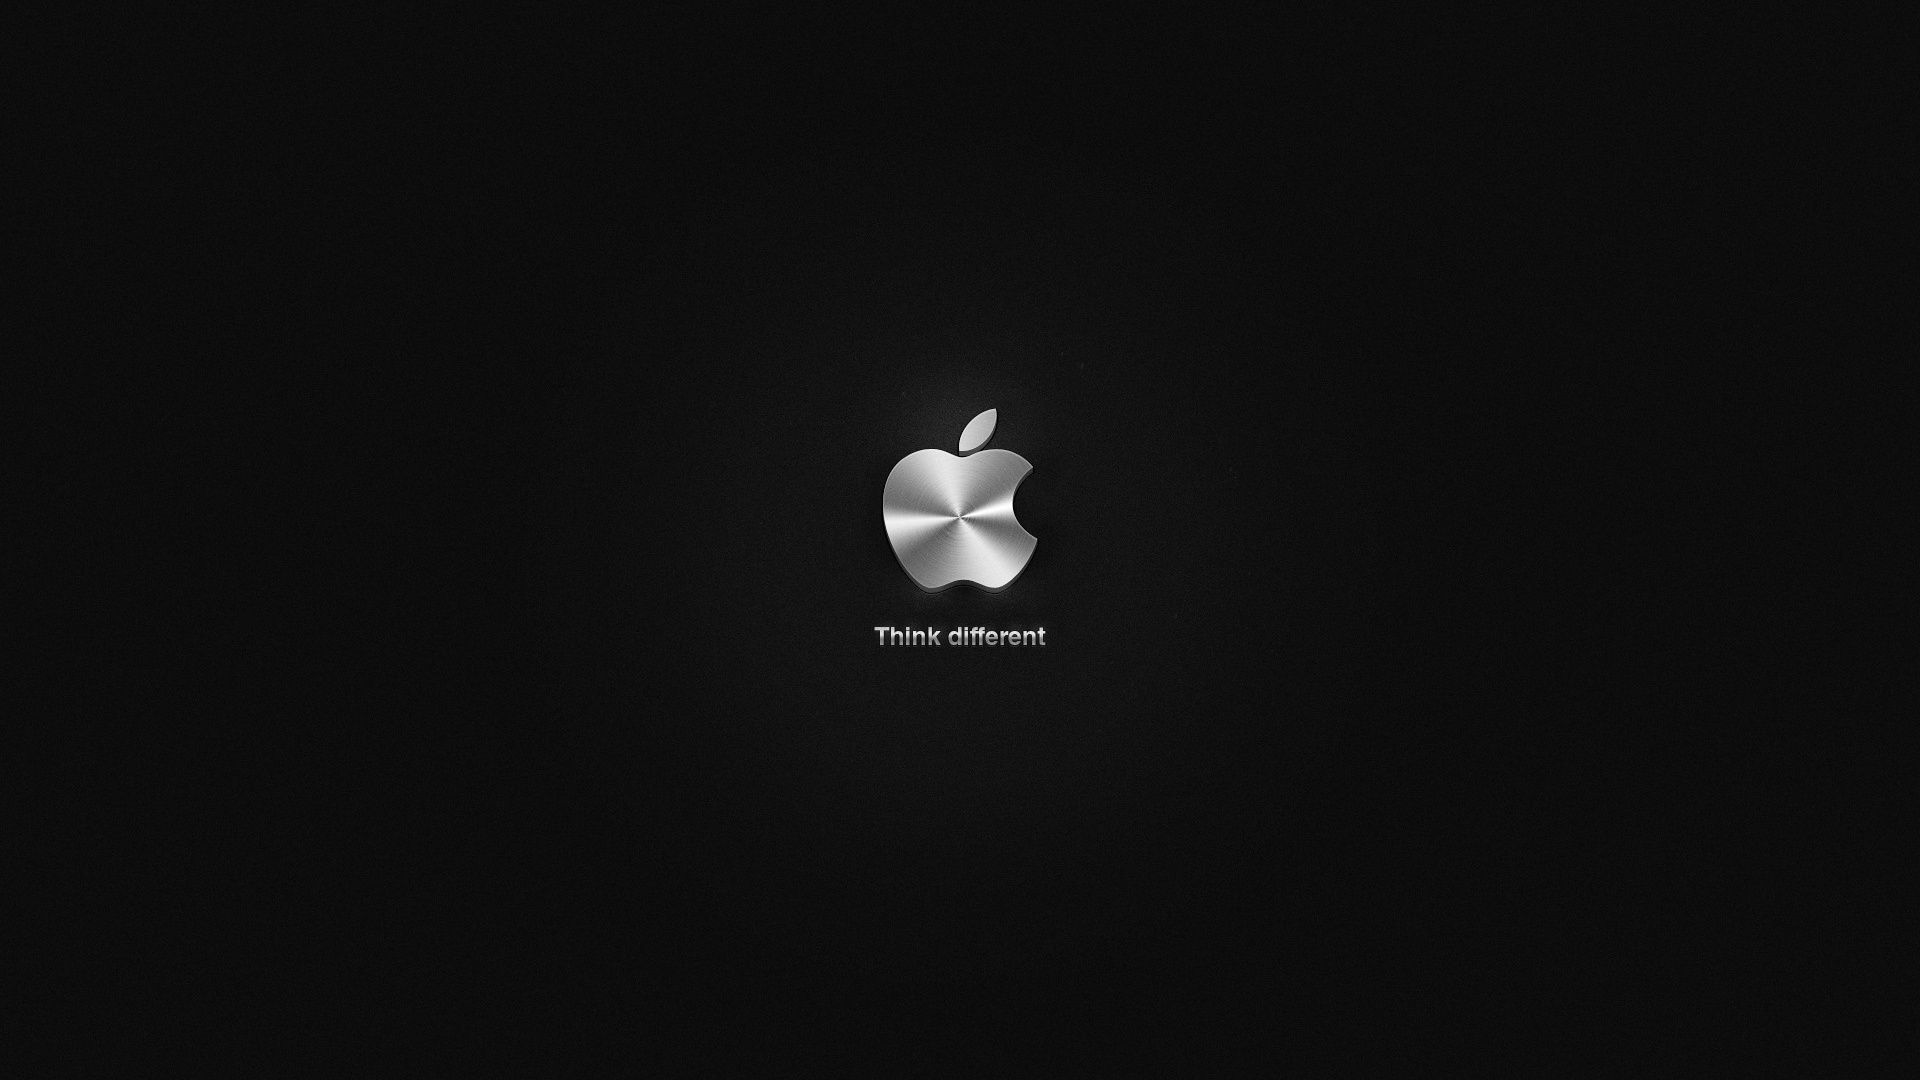 3d Wallpaper Full Hd For Pc 1920x1080 Think Different Desktop Pc And Mac Wallpaper